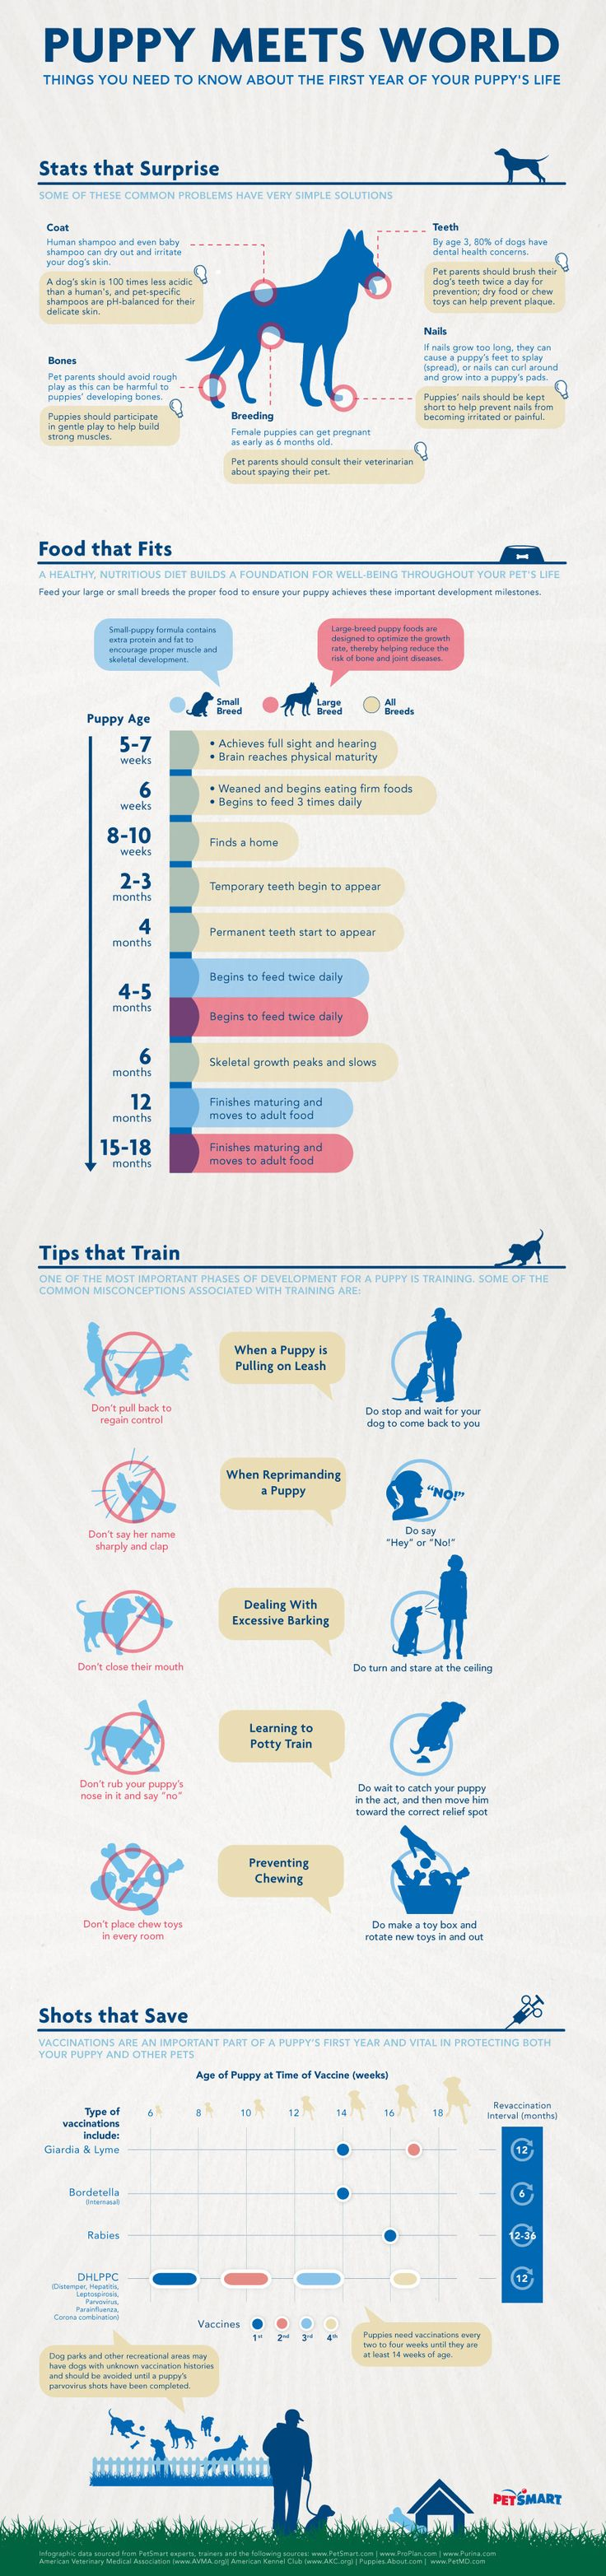 PUPPY MEETS WORLD - Things you need to know about the first year of your puppy's life.